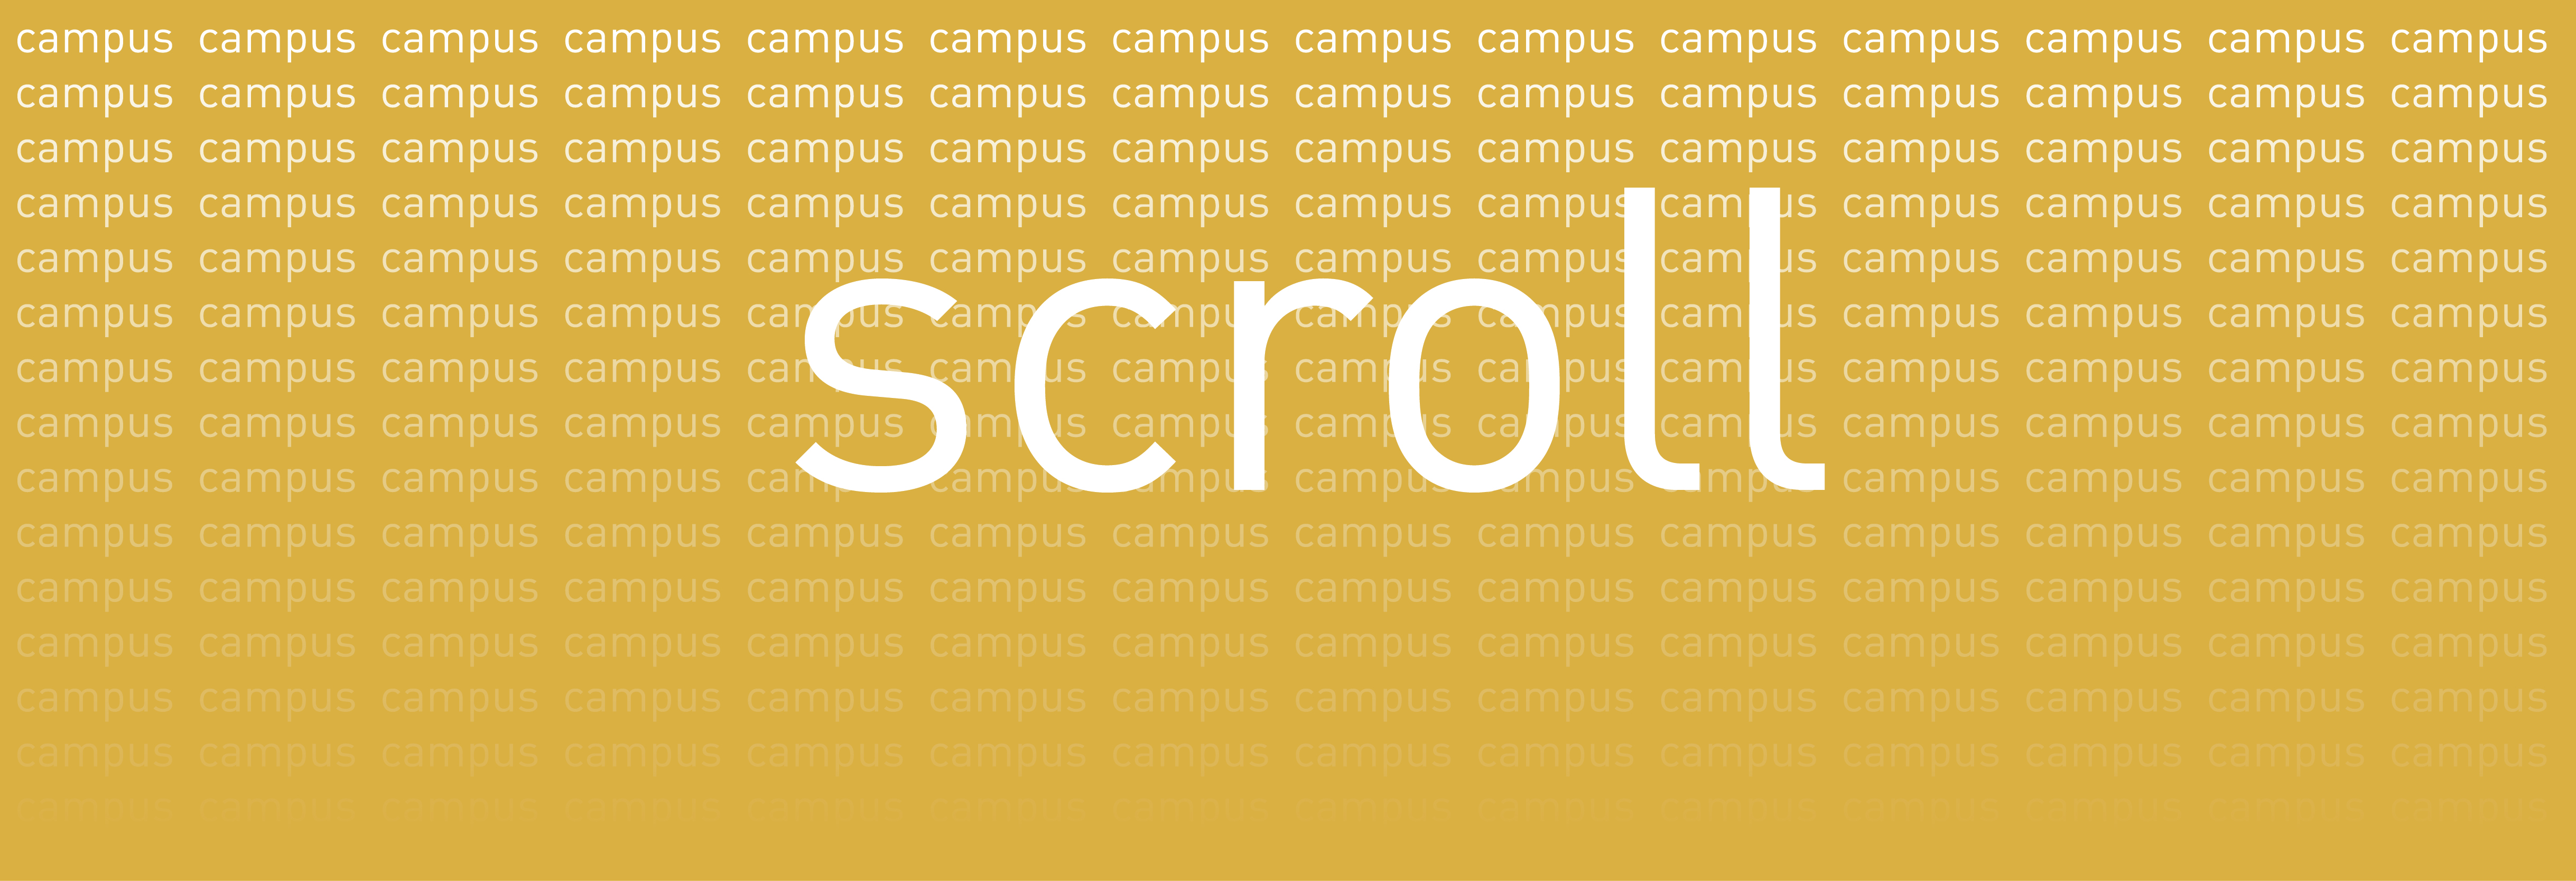 (Main Feature) I~Comm Web Banners_Campus